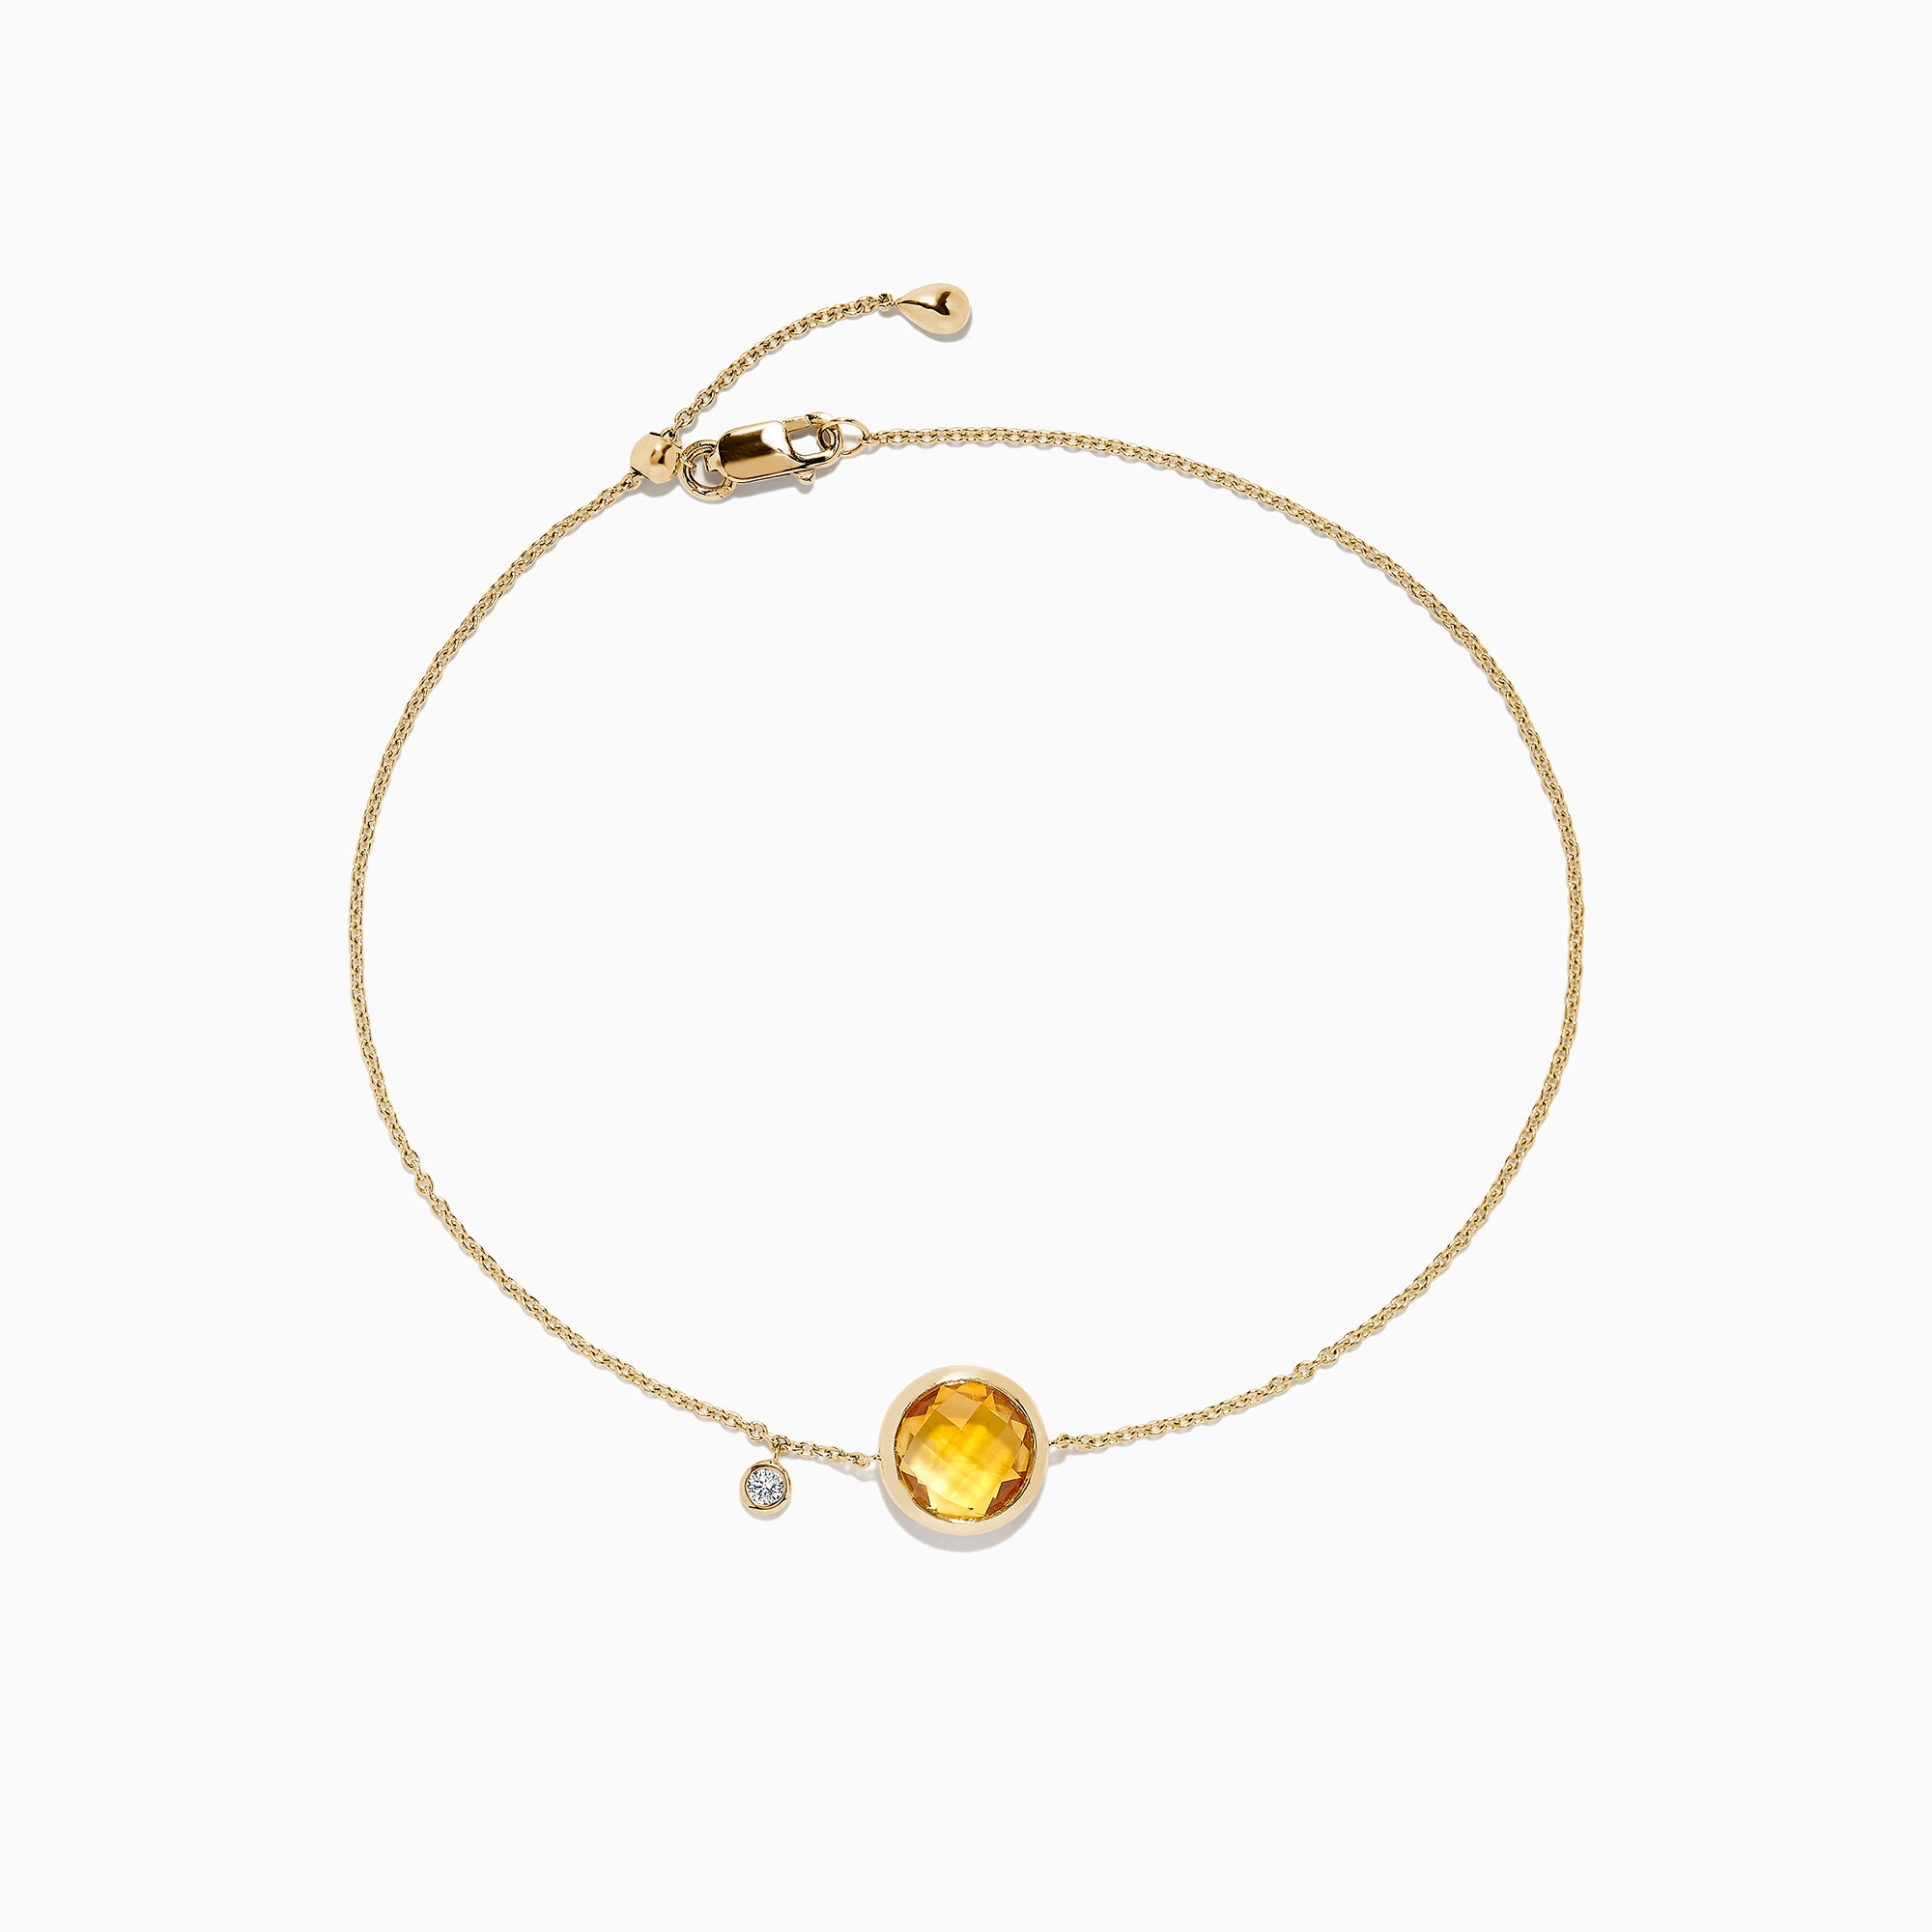 Effy Sunset 14K Yellow Gold Citrine & Diamond Bolo Chain Bracelet, 1.53 TCW